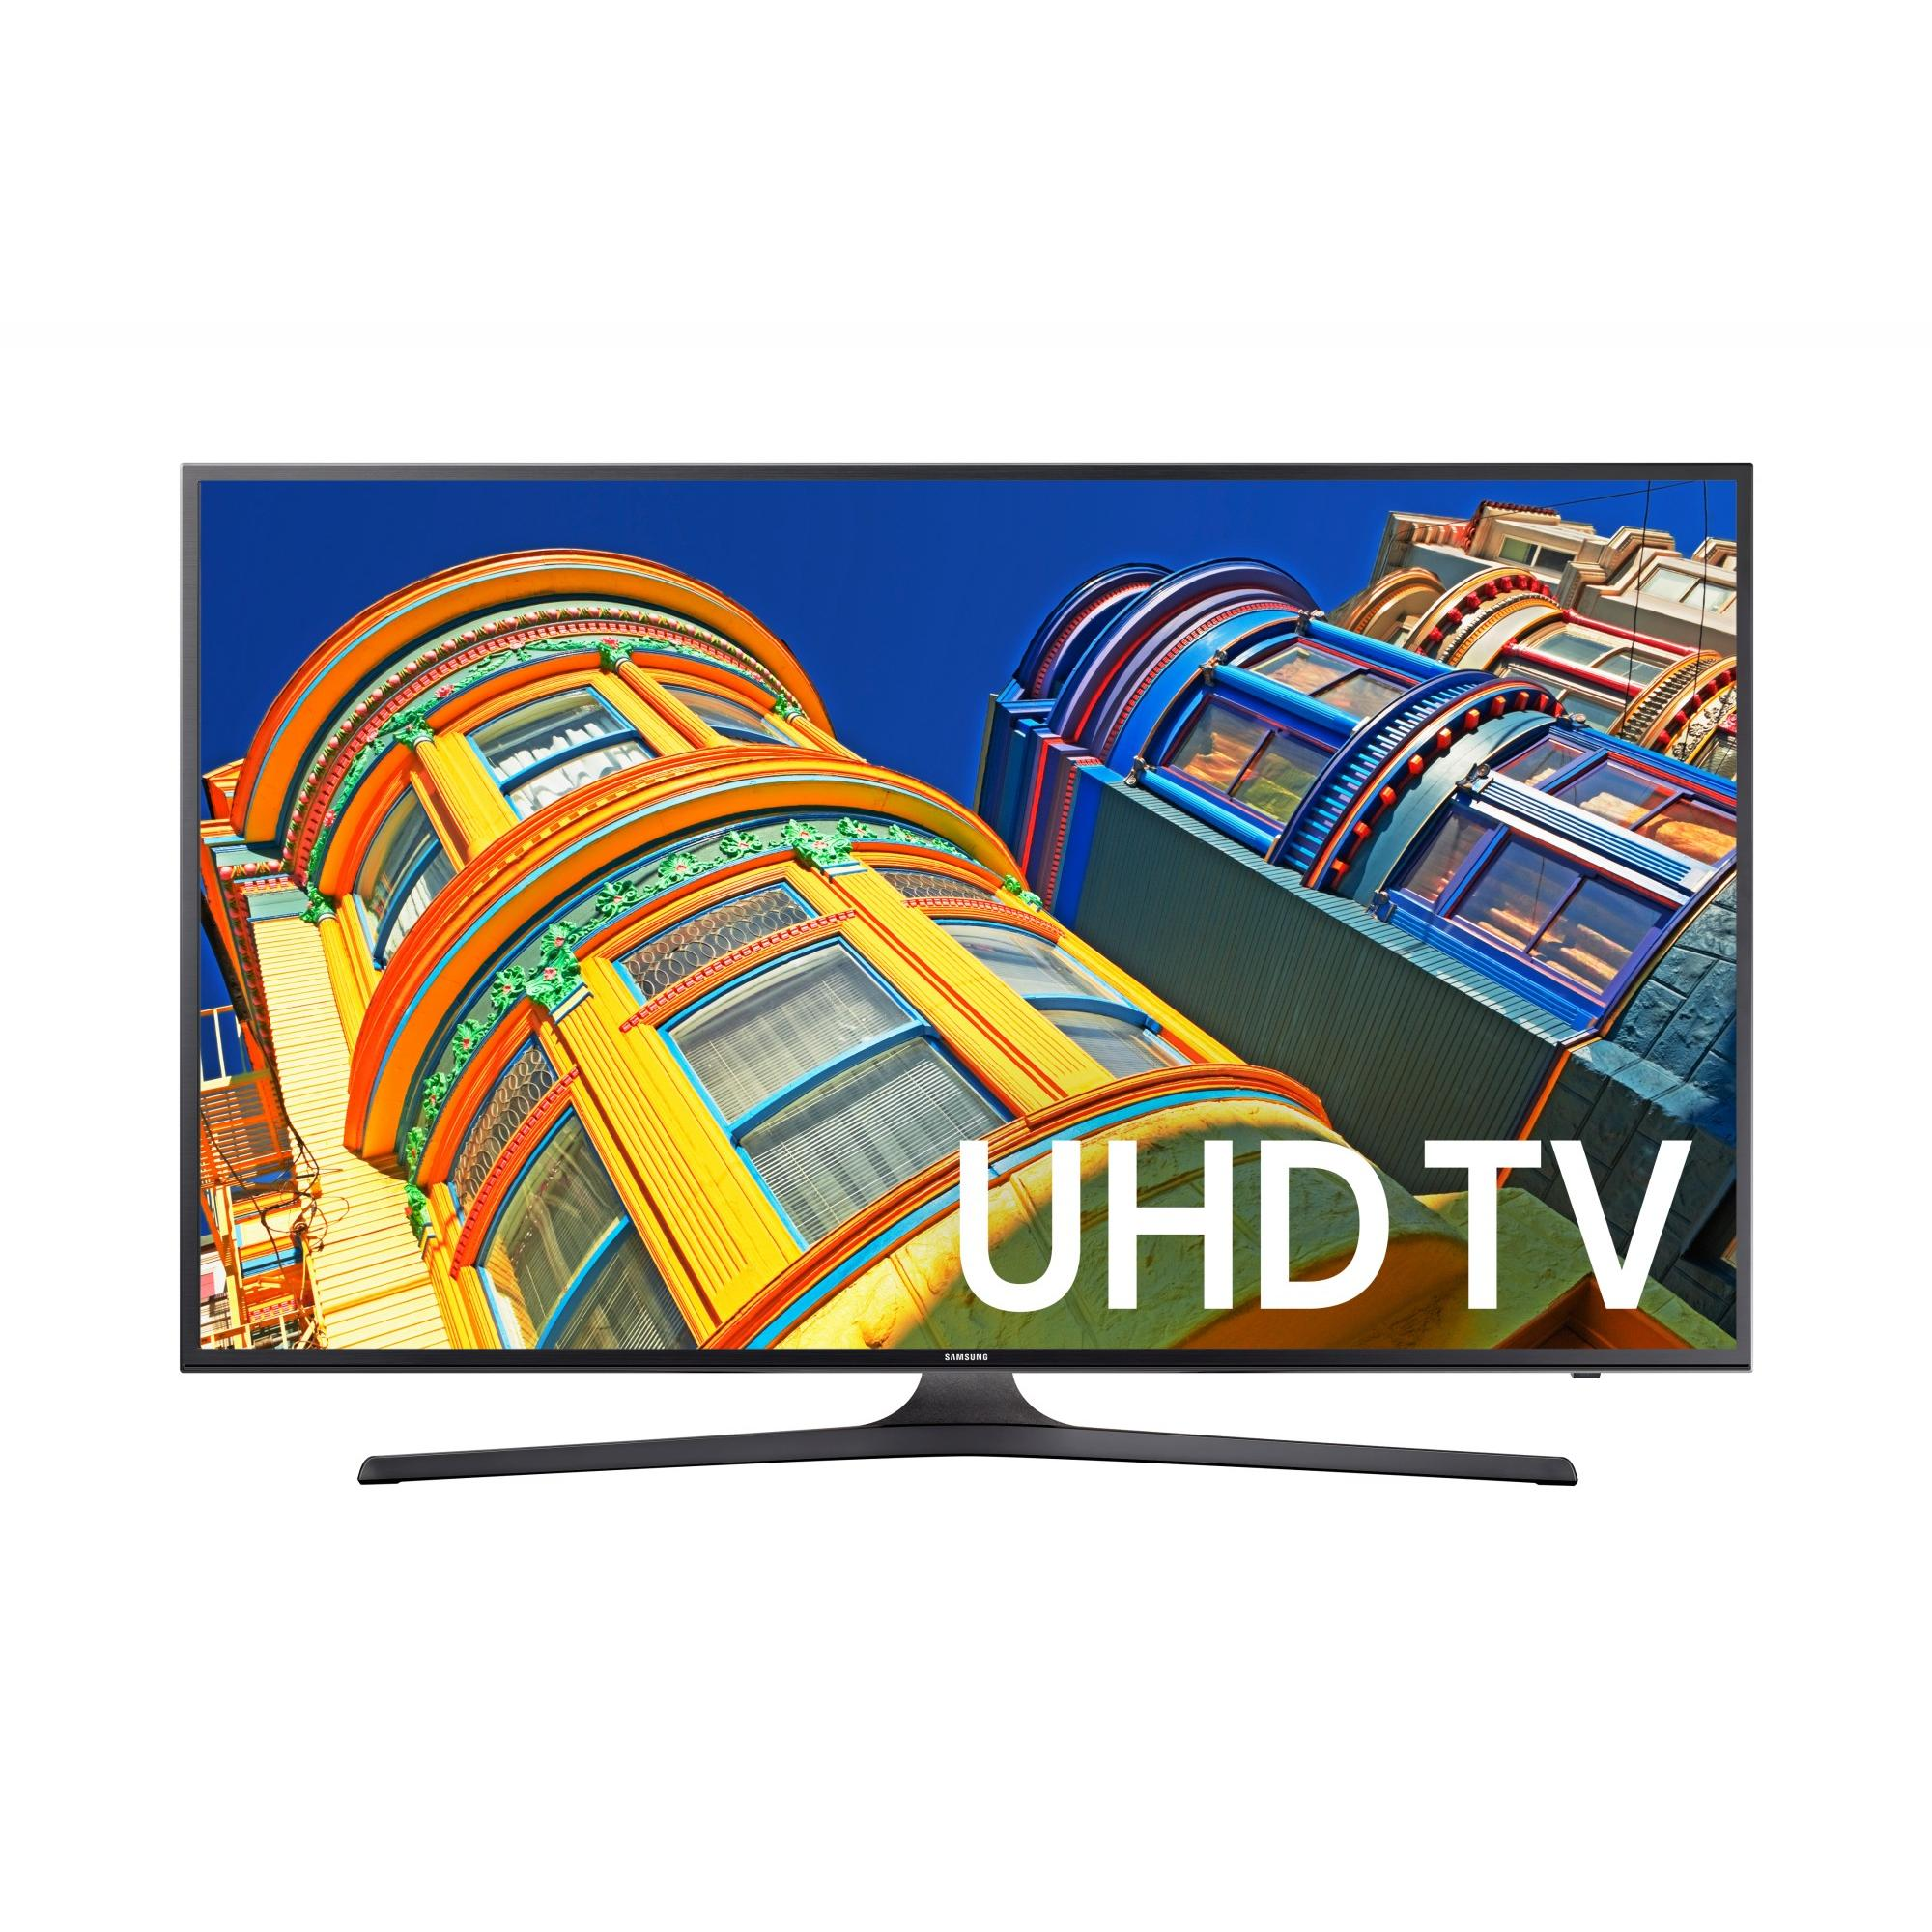 "SAMSUNG 40"" 6300 Series - 4K Ultra HD Smart LED TV - 2160p, 120MR (Model#: UN40KU6300)"